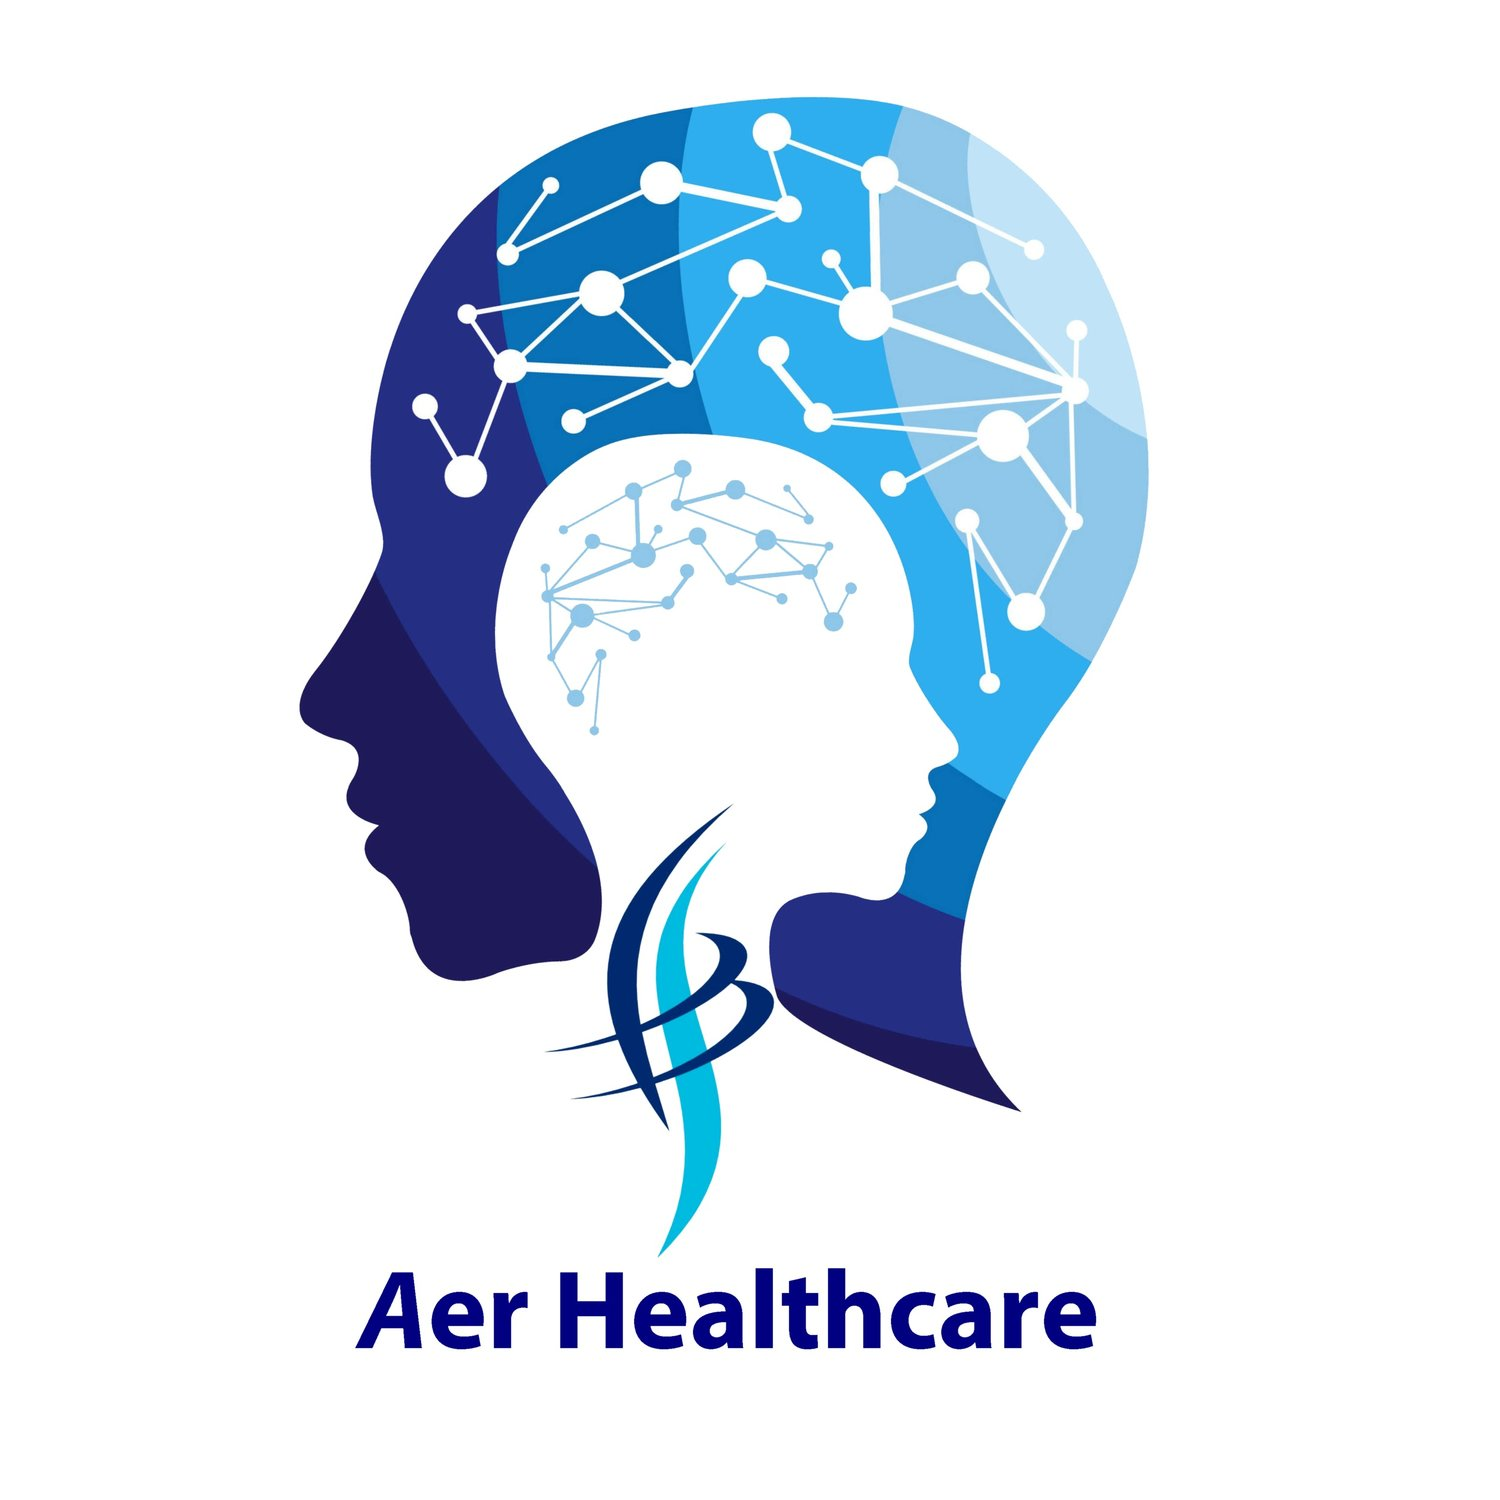 Aer Healthcare